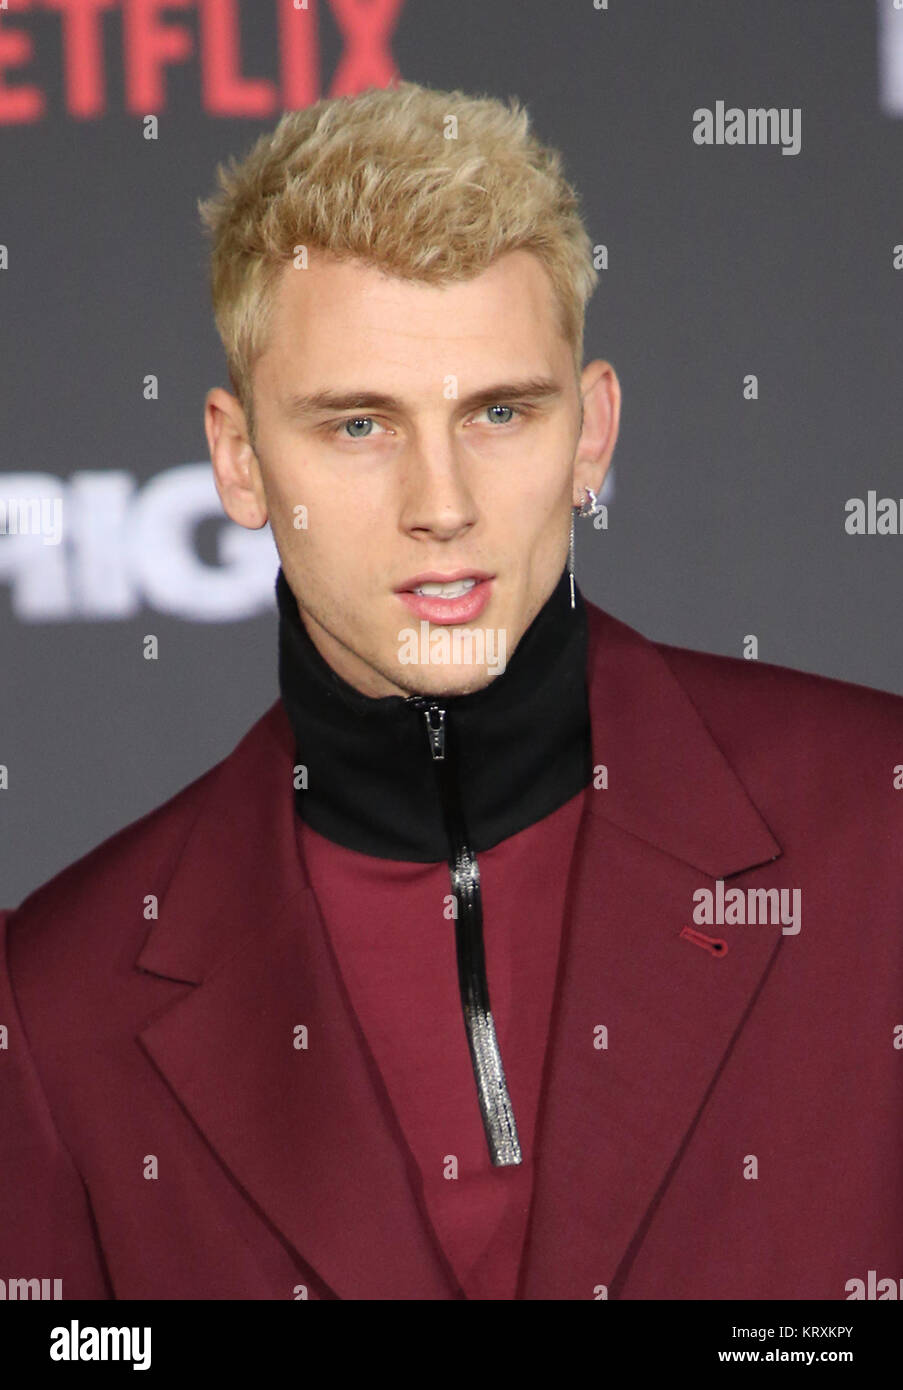 Machine Gun Kelly High Resolution Stock Photography And Images Alamy